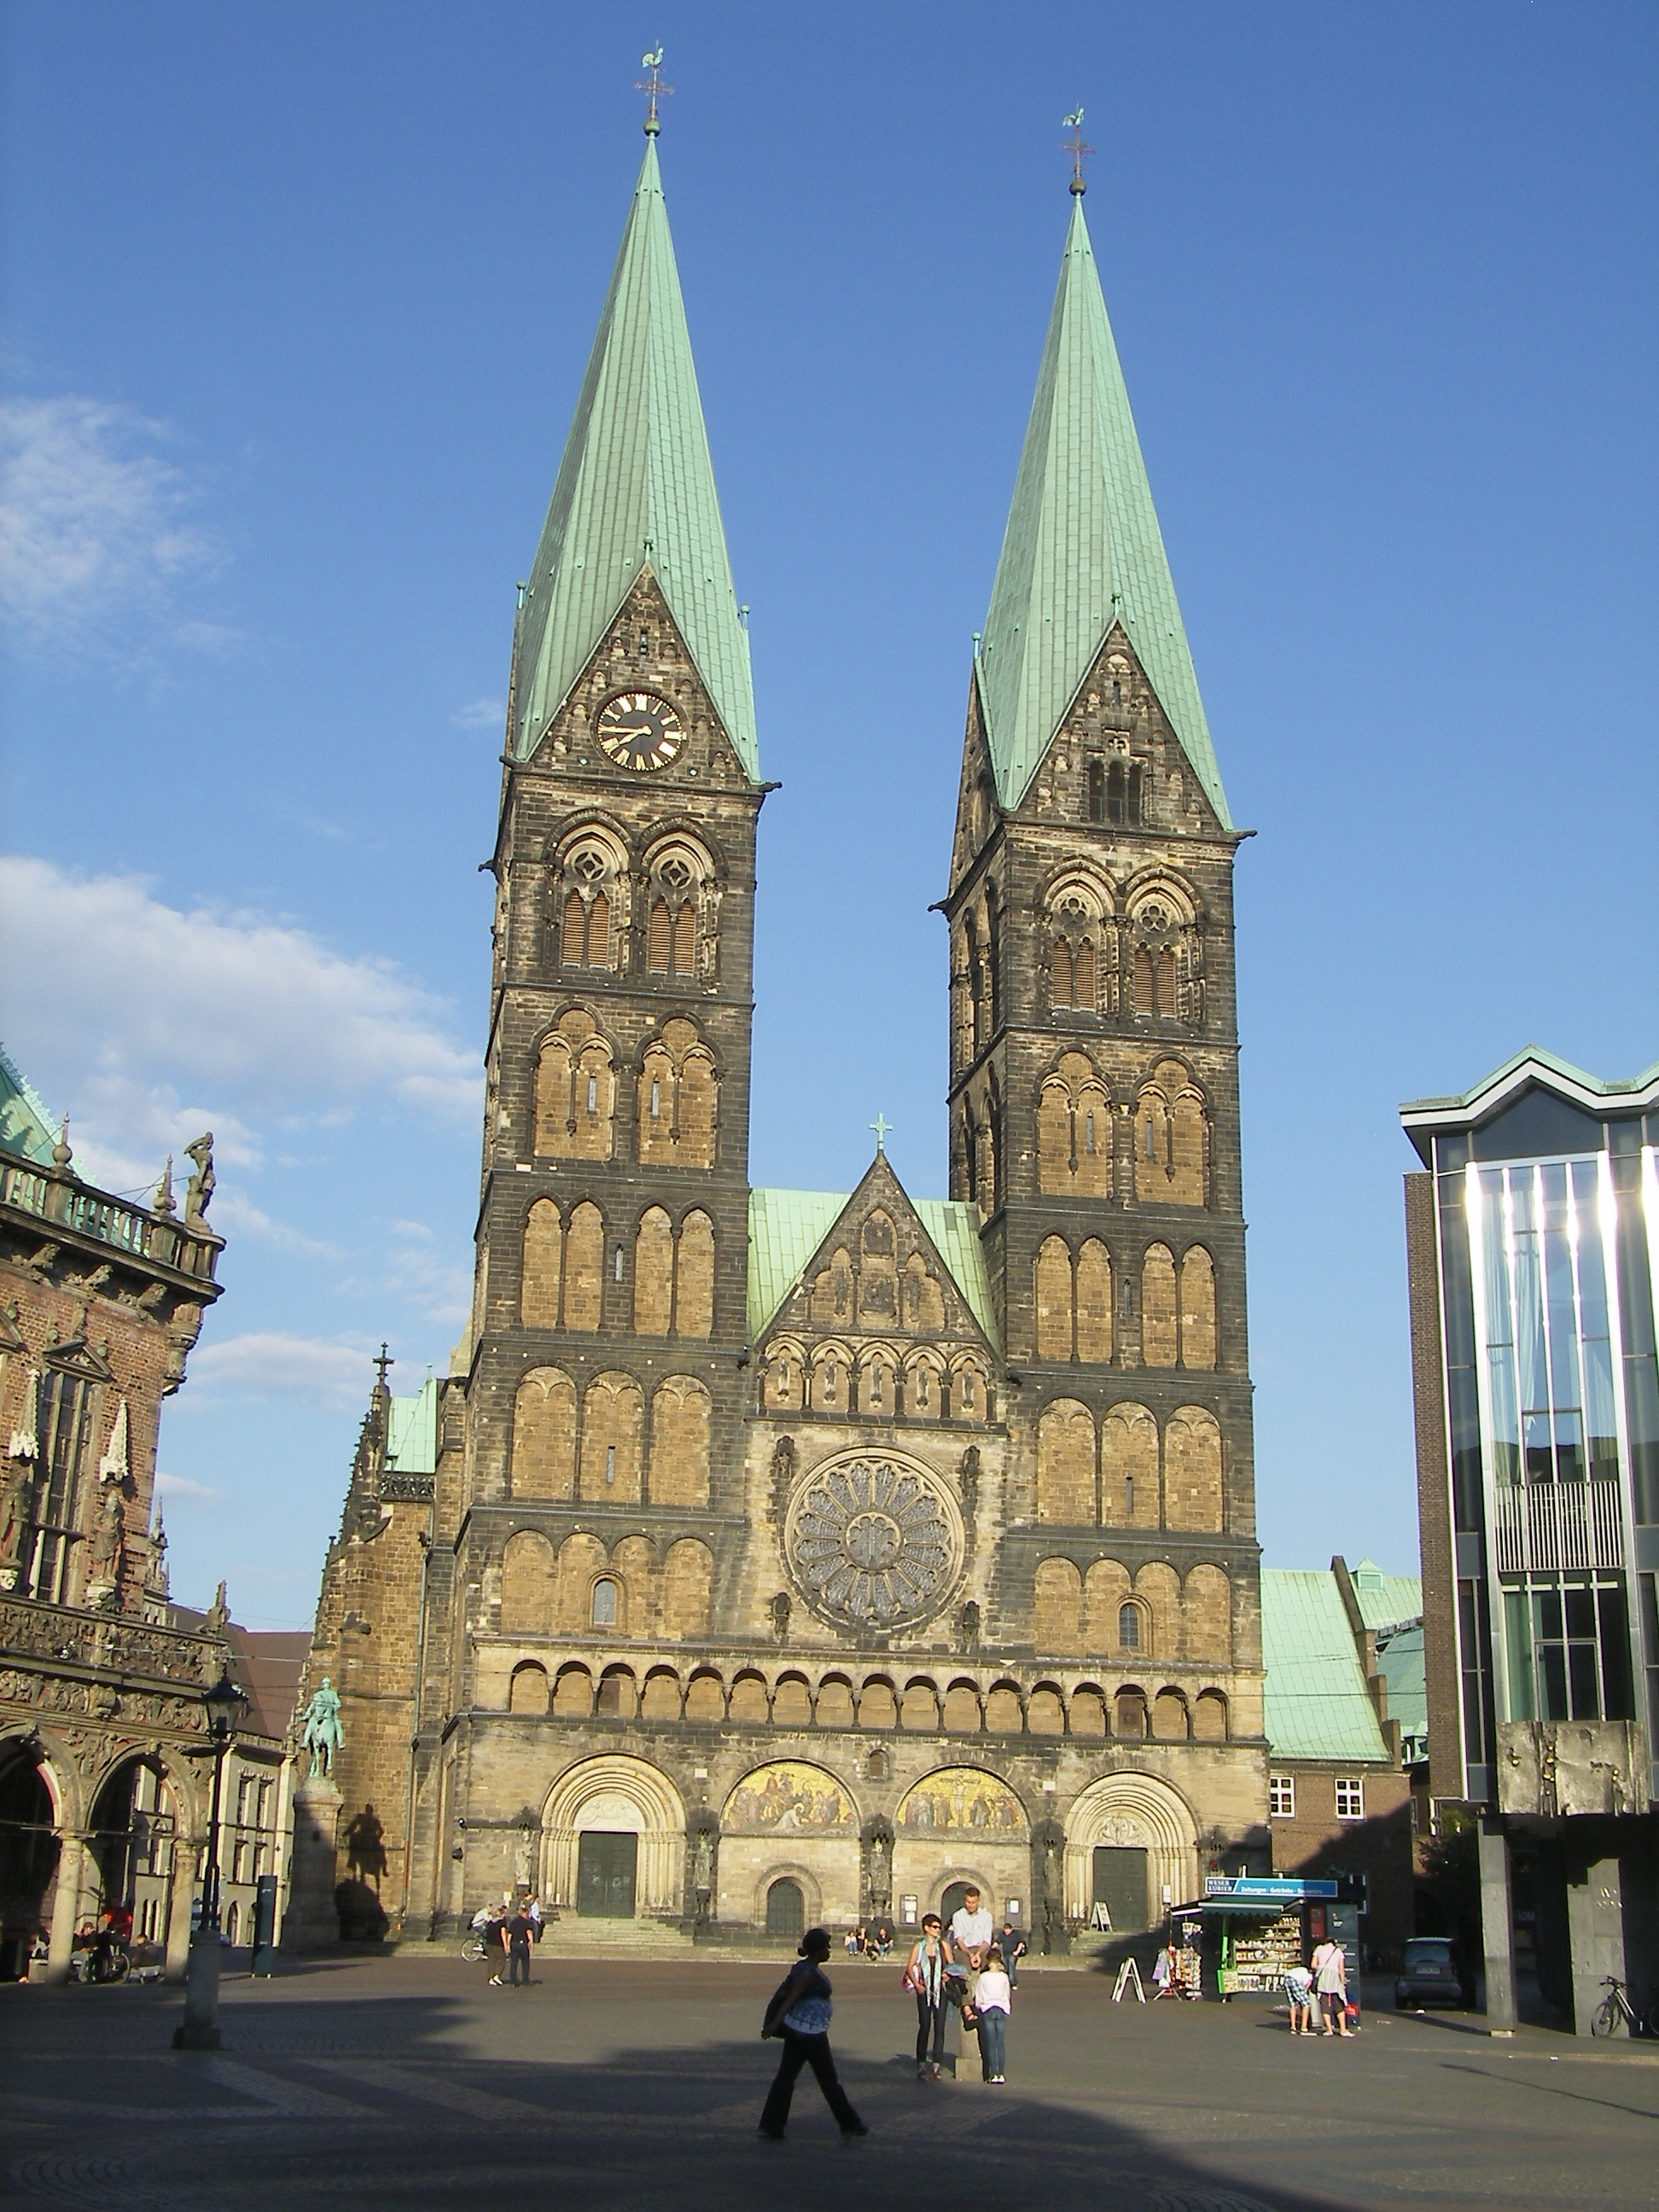 St. Petri Dom The Fairy-Tale Road, St. Petri Dom in Bremen, Germany | Cathedrals & Old Churches of ...